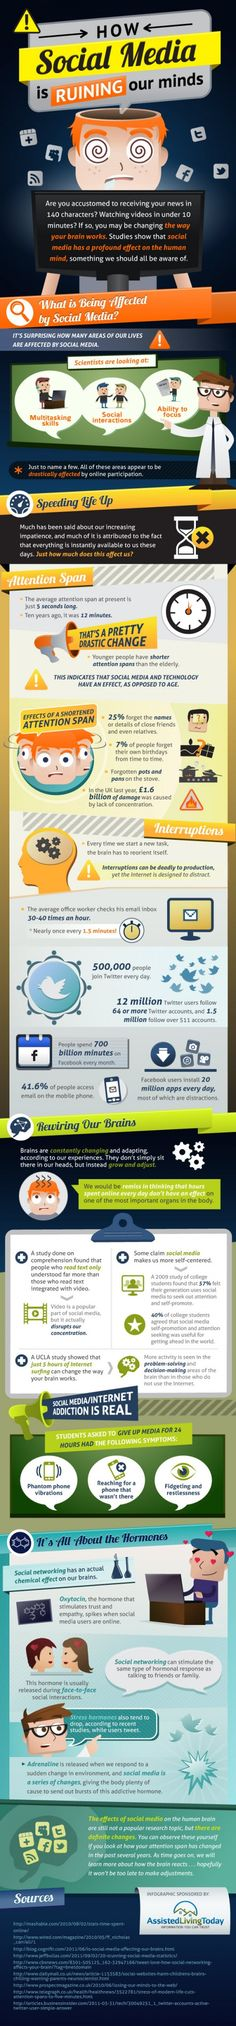 How social media is RUNING our minds.